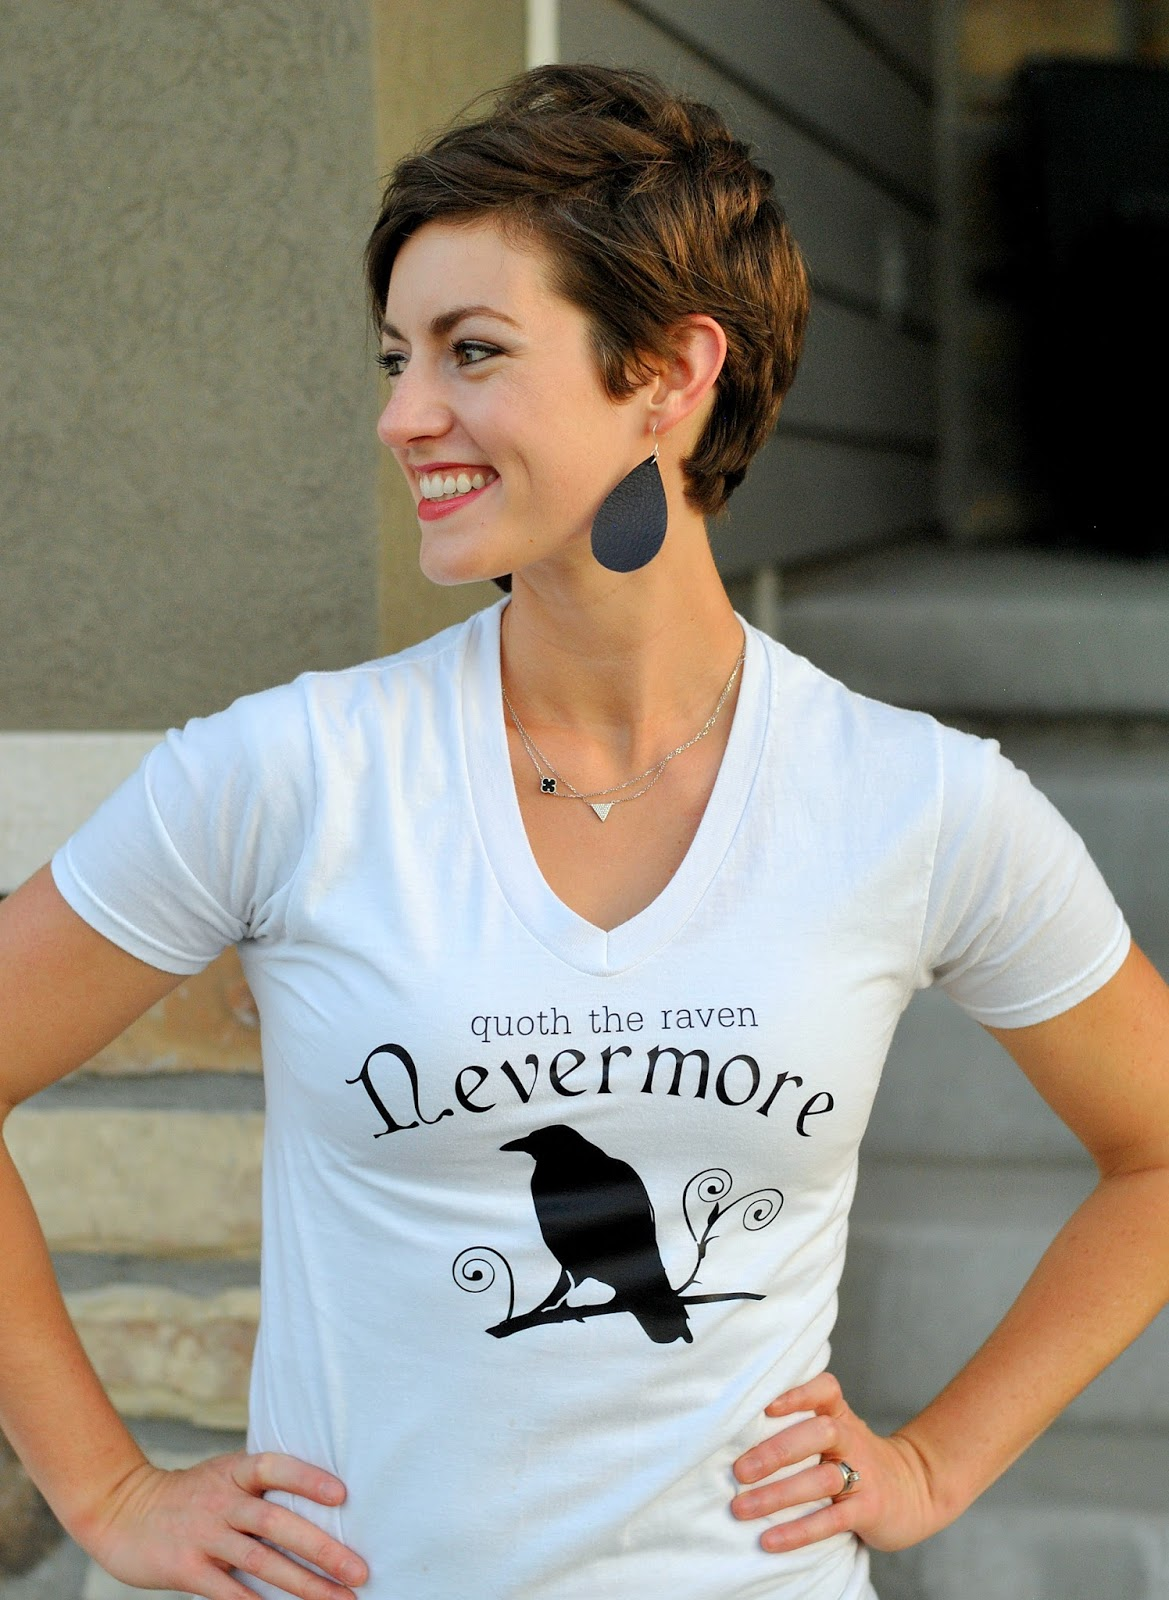 DIY this awesome Nevermore shirt inspired by The Raven!